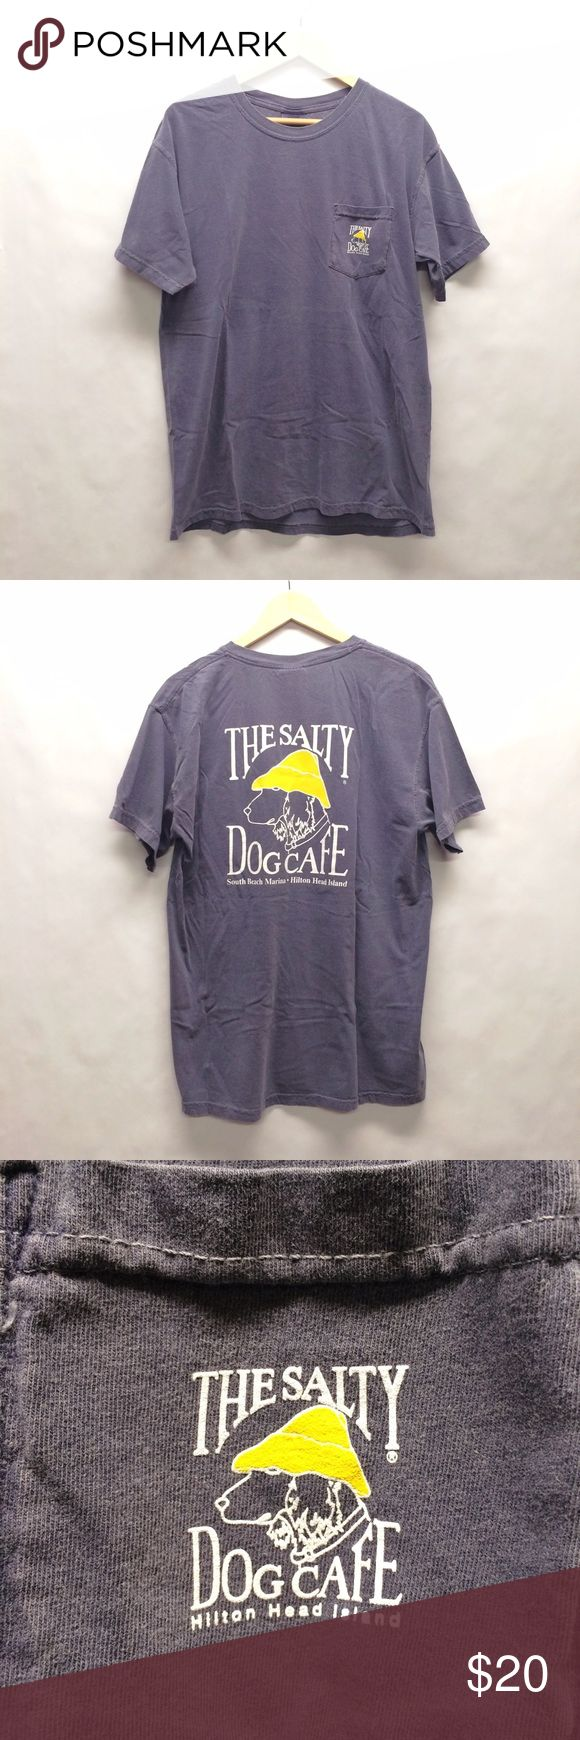 Salty Dog tee Jake, The Salty Dog, is a legend so much so that he is worthy of being put on t-shirts to be admired all across the land. The food at the cafe is good too. Comfort Colors brand pocket tee.   No trades. Reasonable offers accepted through offer feature. Tops Tees - Short Sleeve